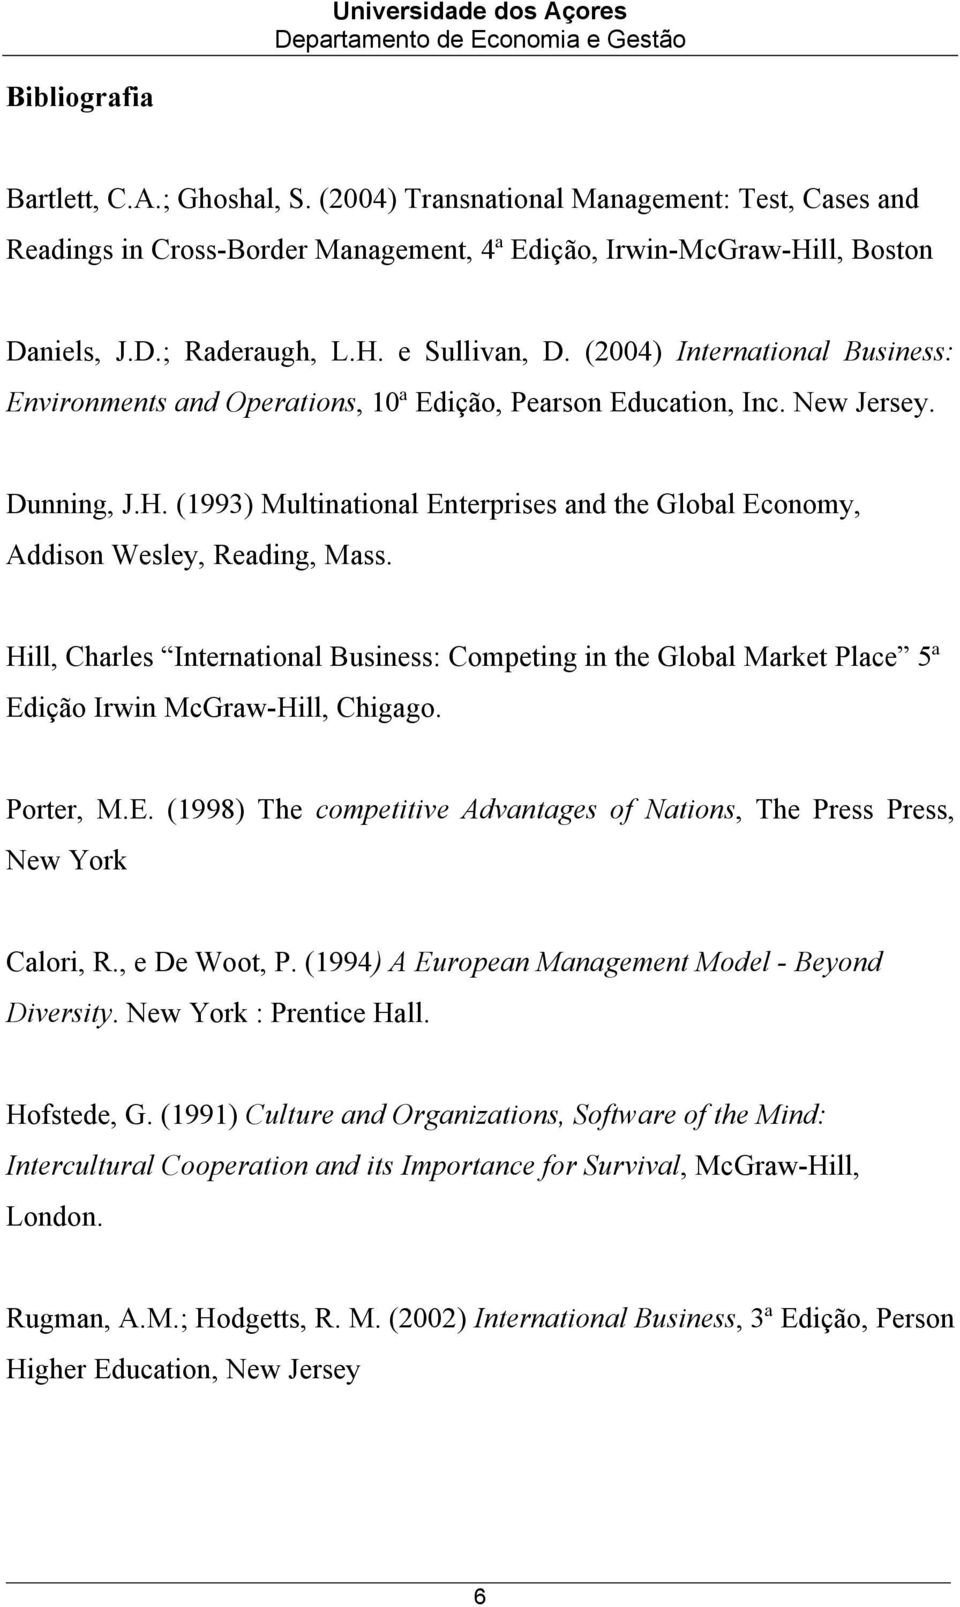 (1993) Multinational Enterprises and the Global Economy, Addison Wesley, Reading, Mass. Hill, Charles International Business: Competing in the Global Market Place 5ª Edição Irwin McGraw-Hill, Chigago.